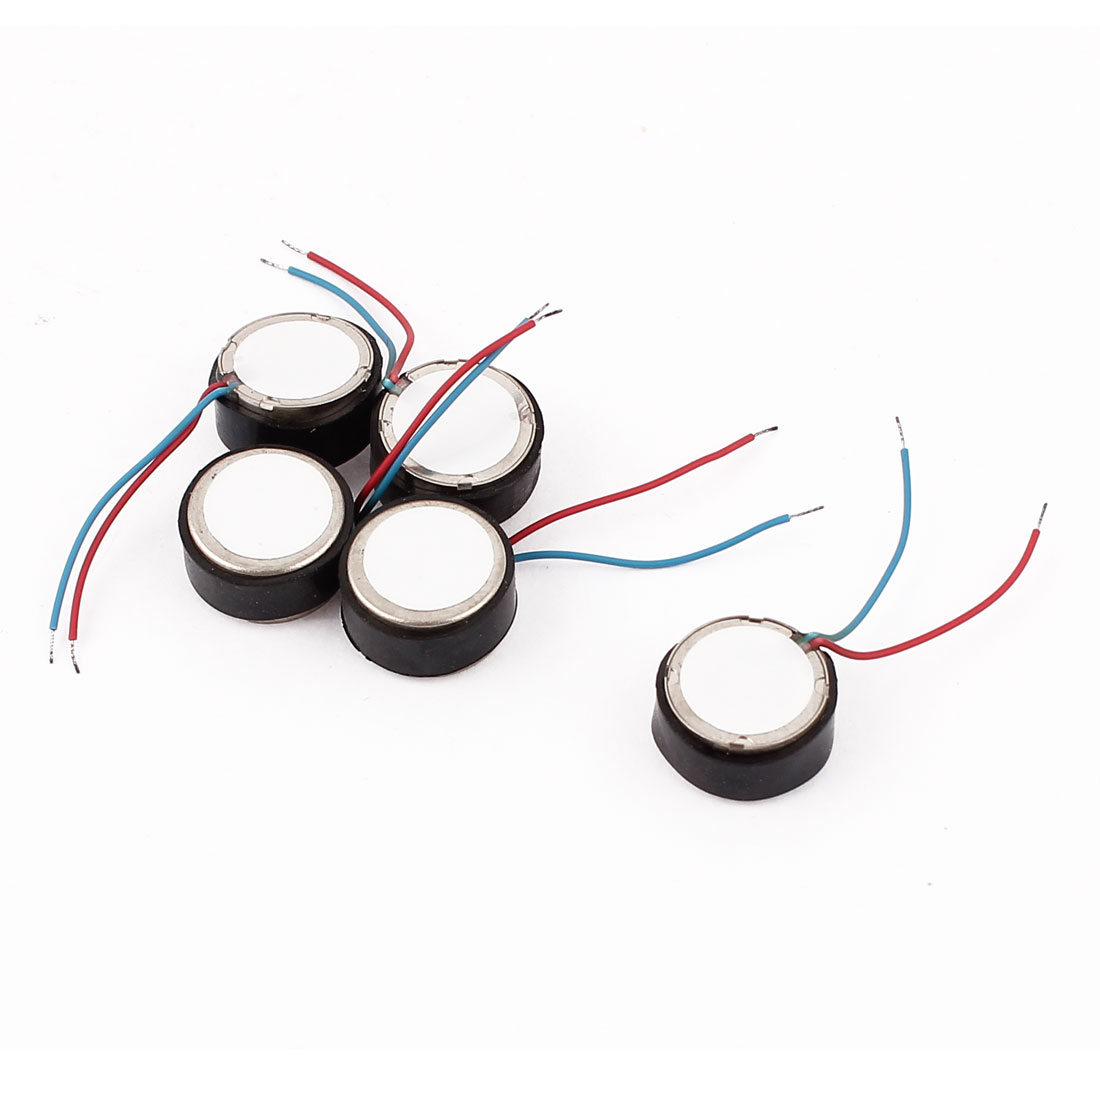 5Pcs DC 3-6V 11mm x 6.3mm Magnetic Vibrating Motor for Massor